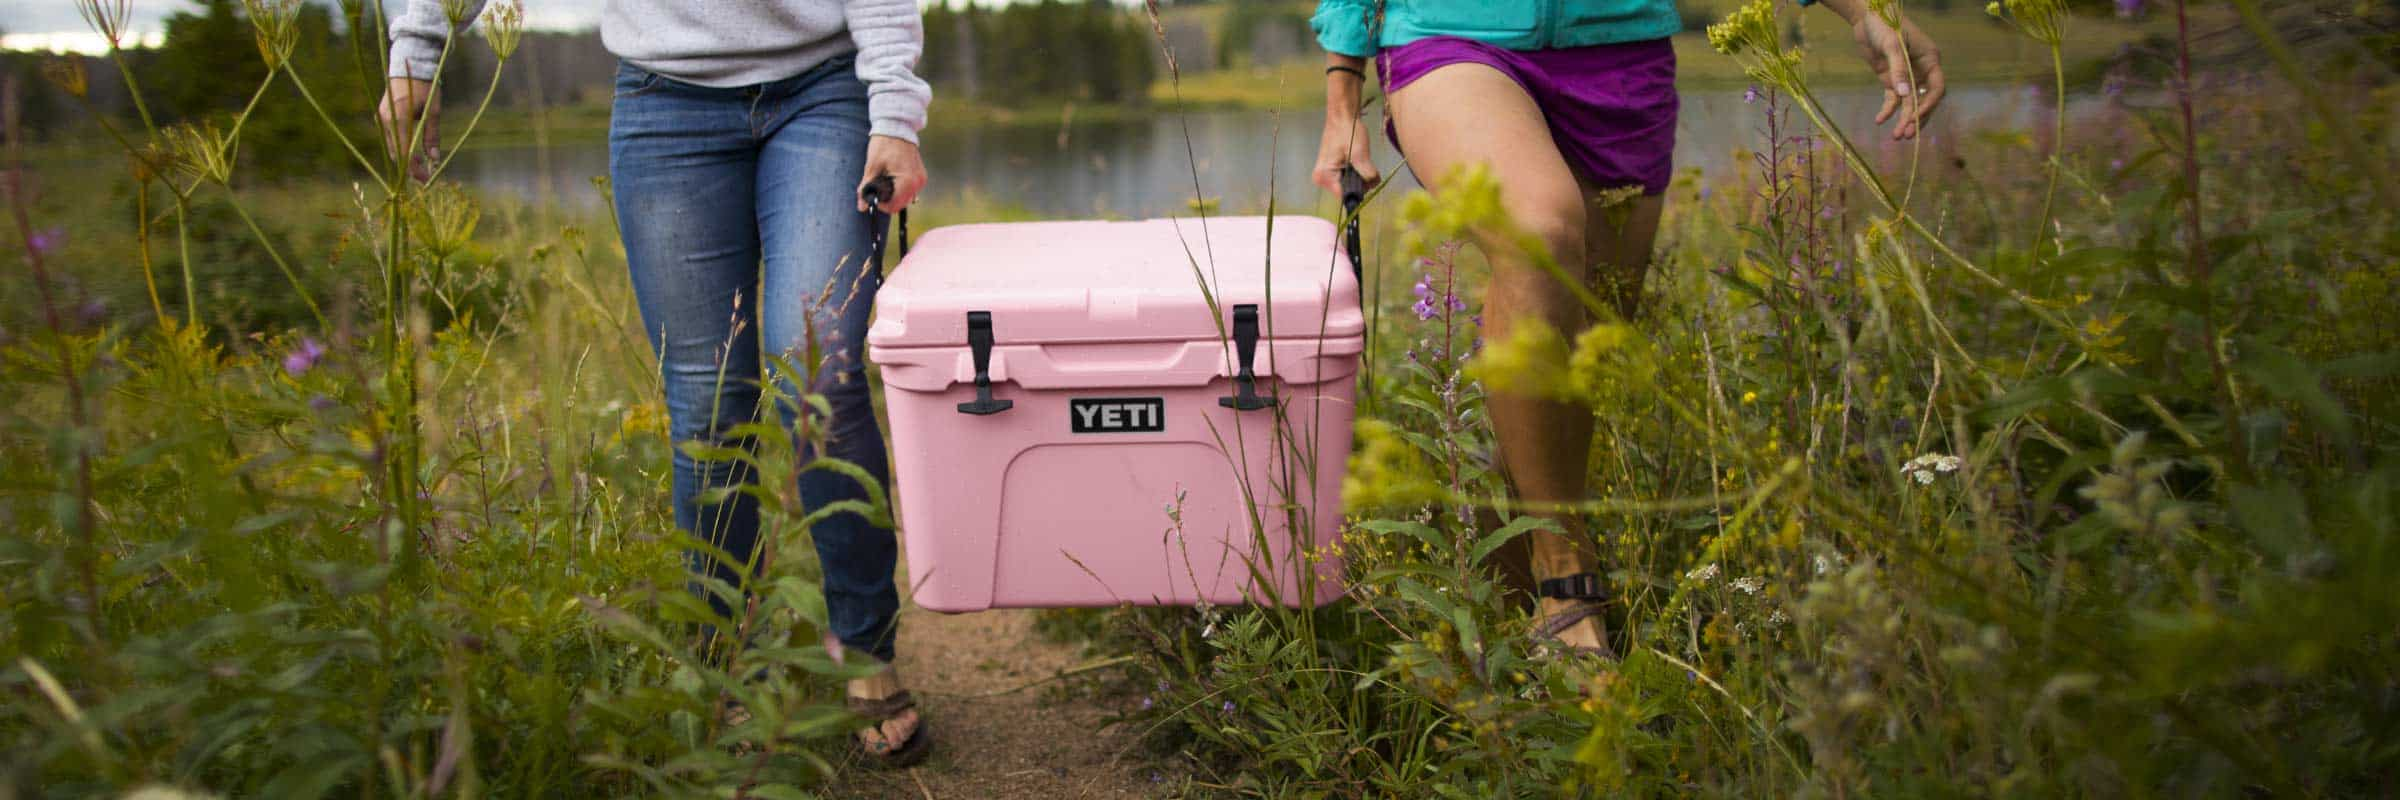 Coleman, Pelican, YETI. Best Hard Coolers for Summer 2018